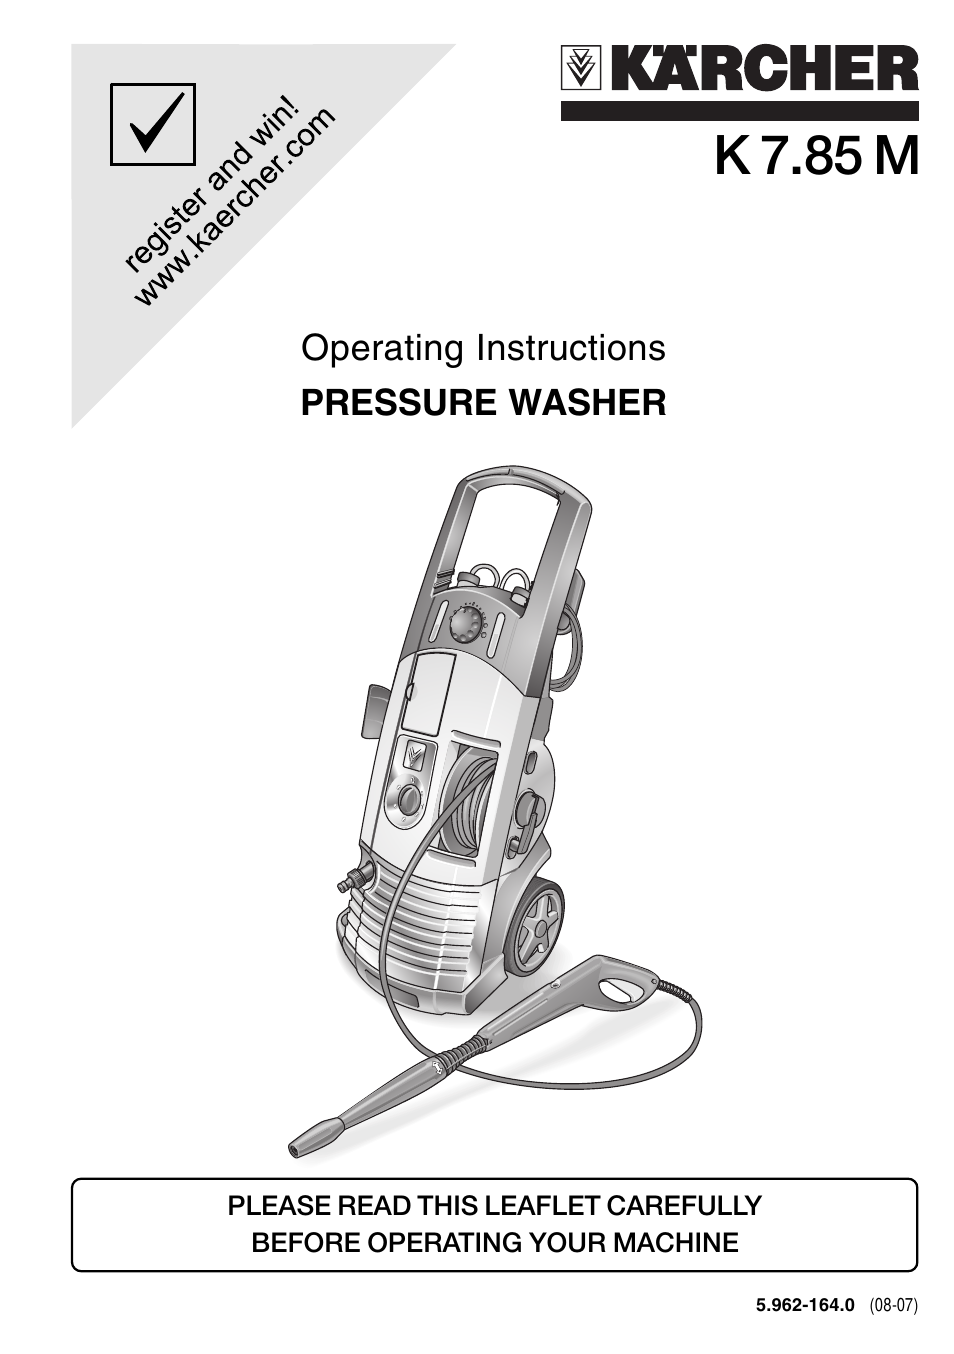 karcher k 7 85 m user manual